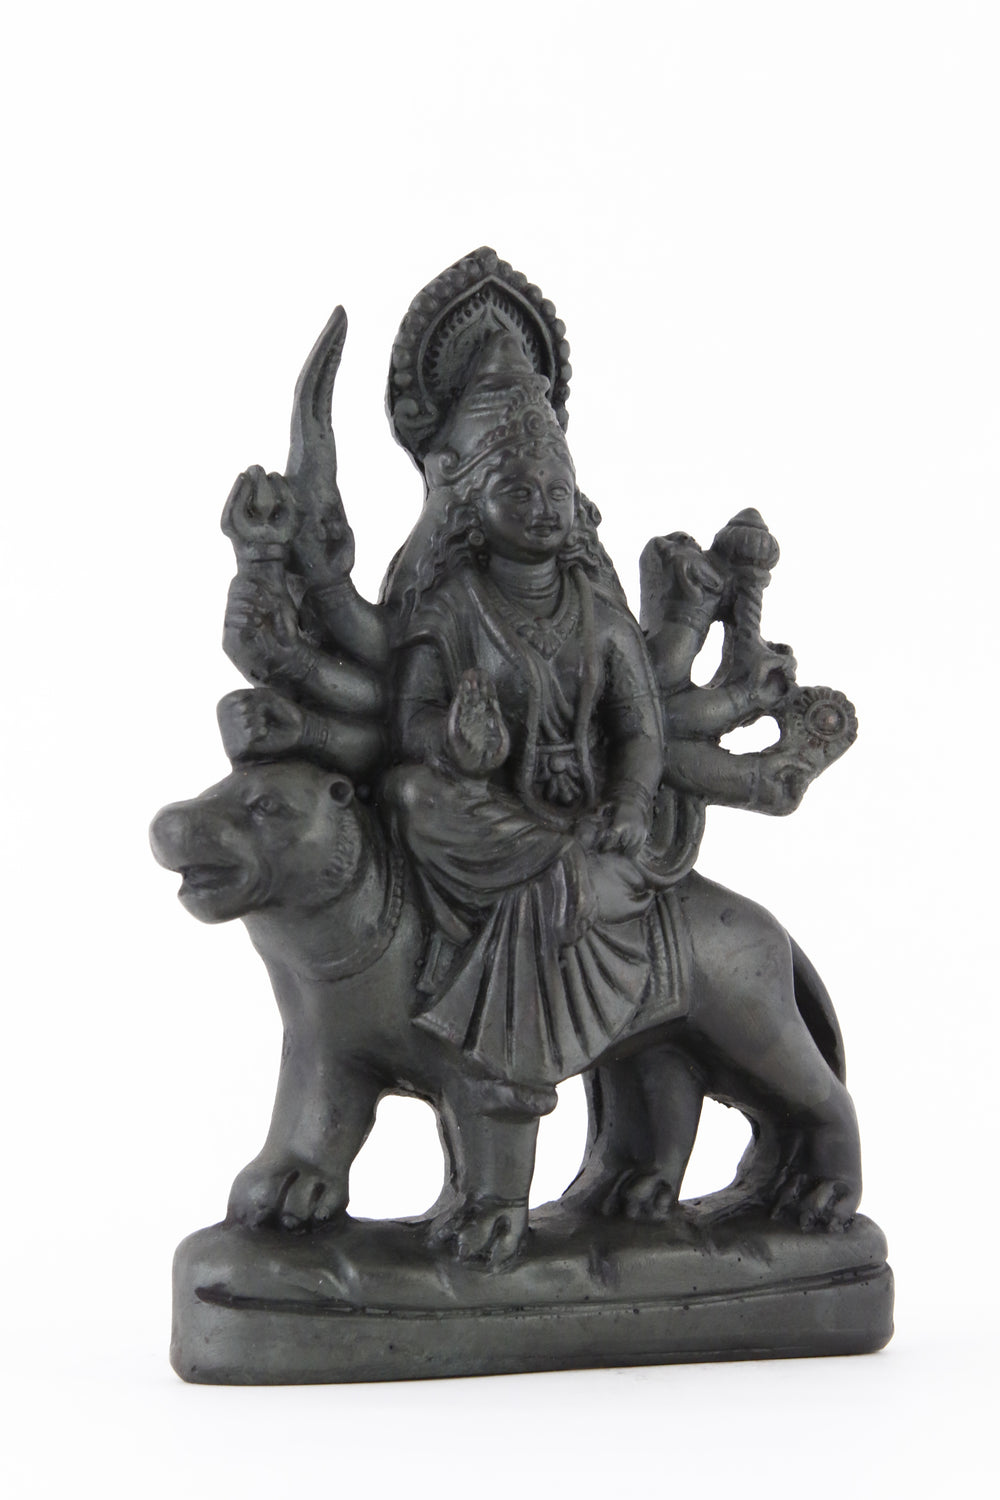 GODDESS DURGA STATUE DARK SIDE VIEW